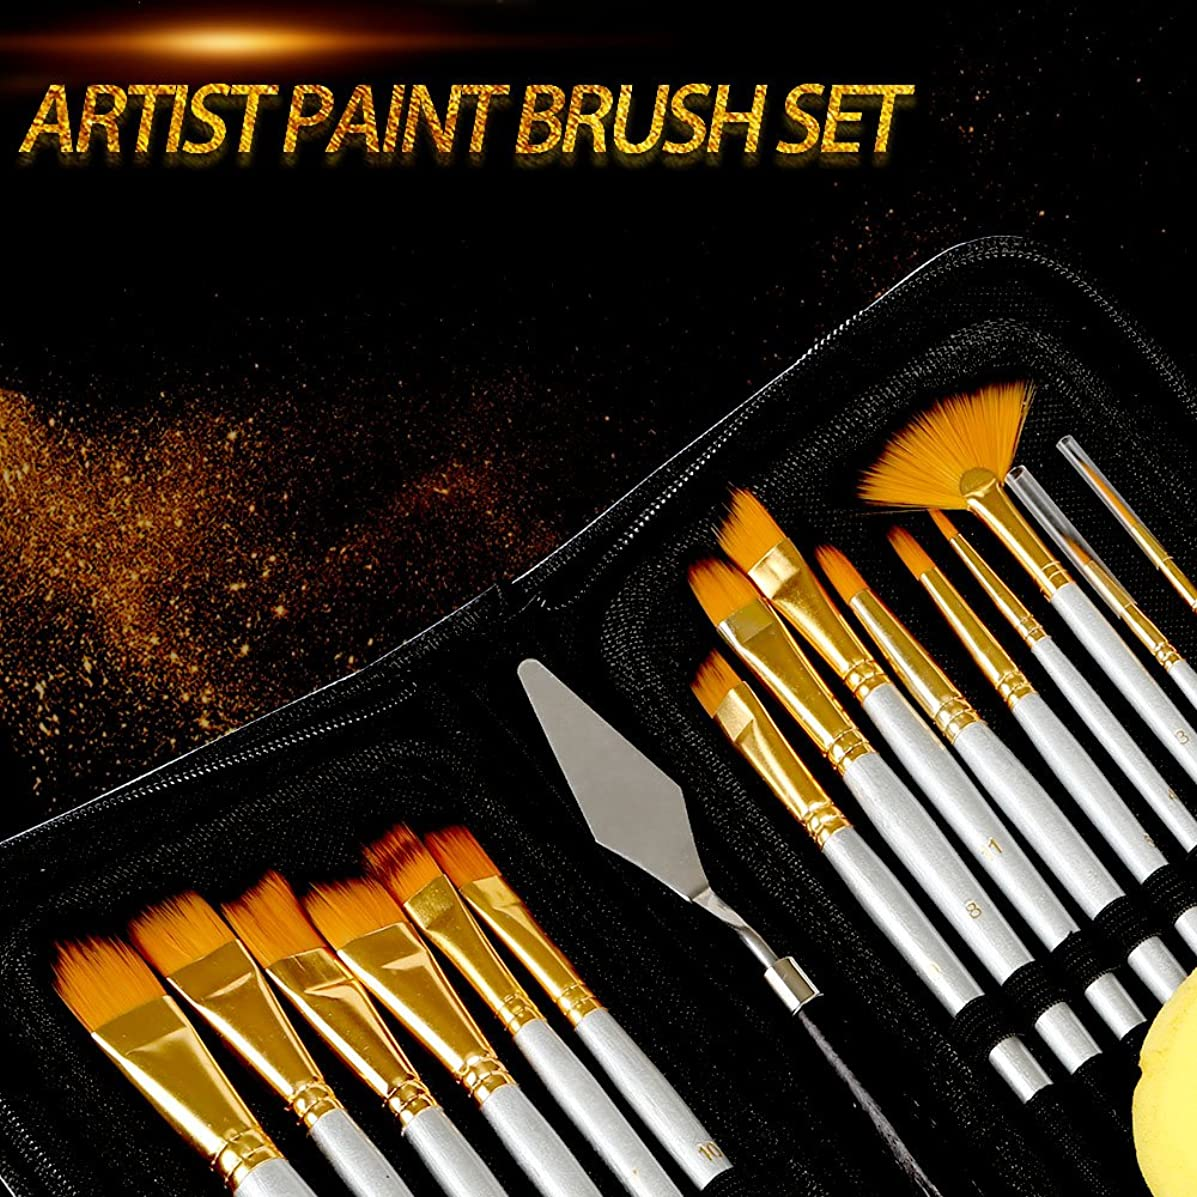 Kesoto Paint Brush Set - 15 Different Shapes & Sizes - Free Painting Knife & Watercolor Sponge - No Shed Bristles - Wood Handles - for Body Paint, Acrylics & Oil